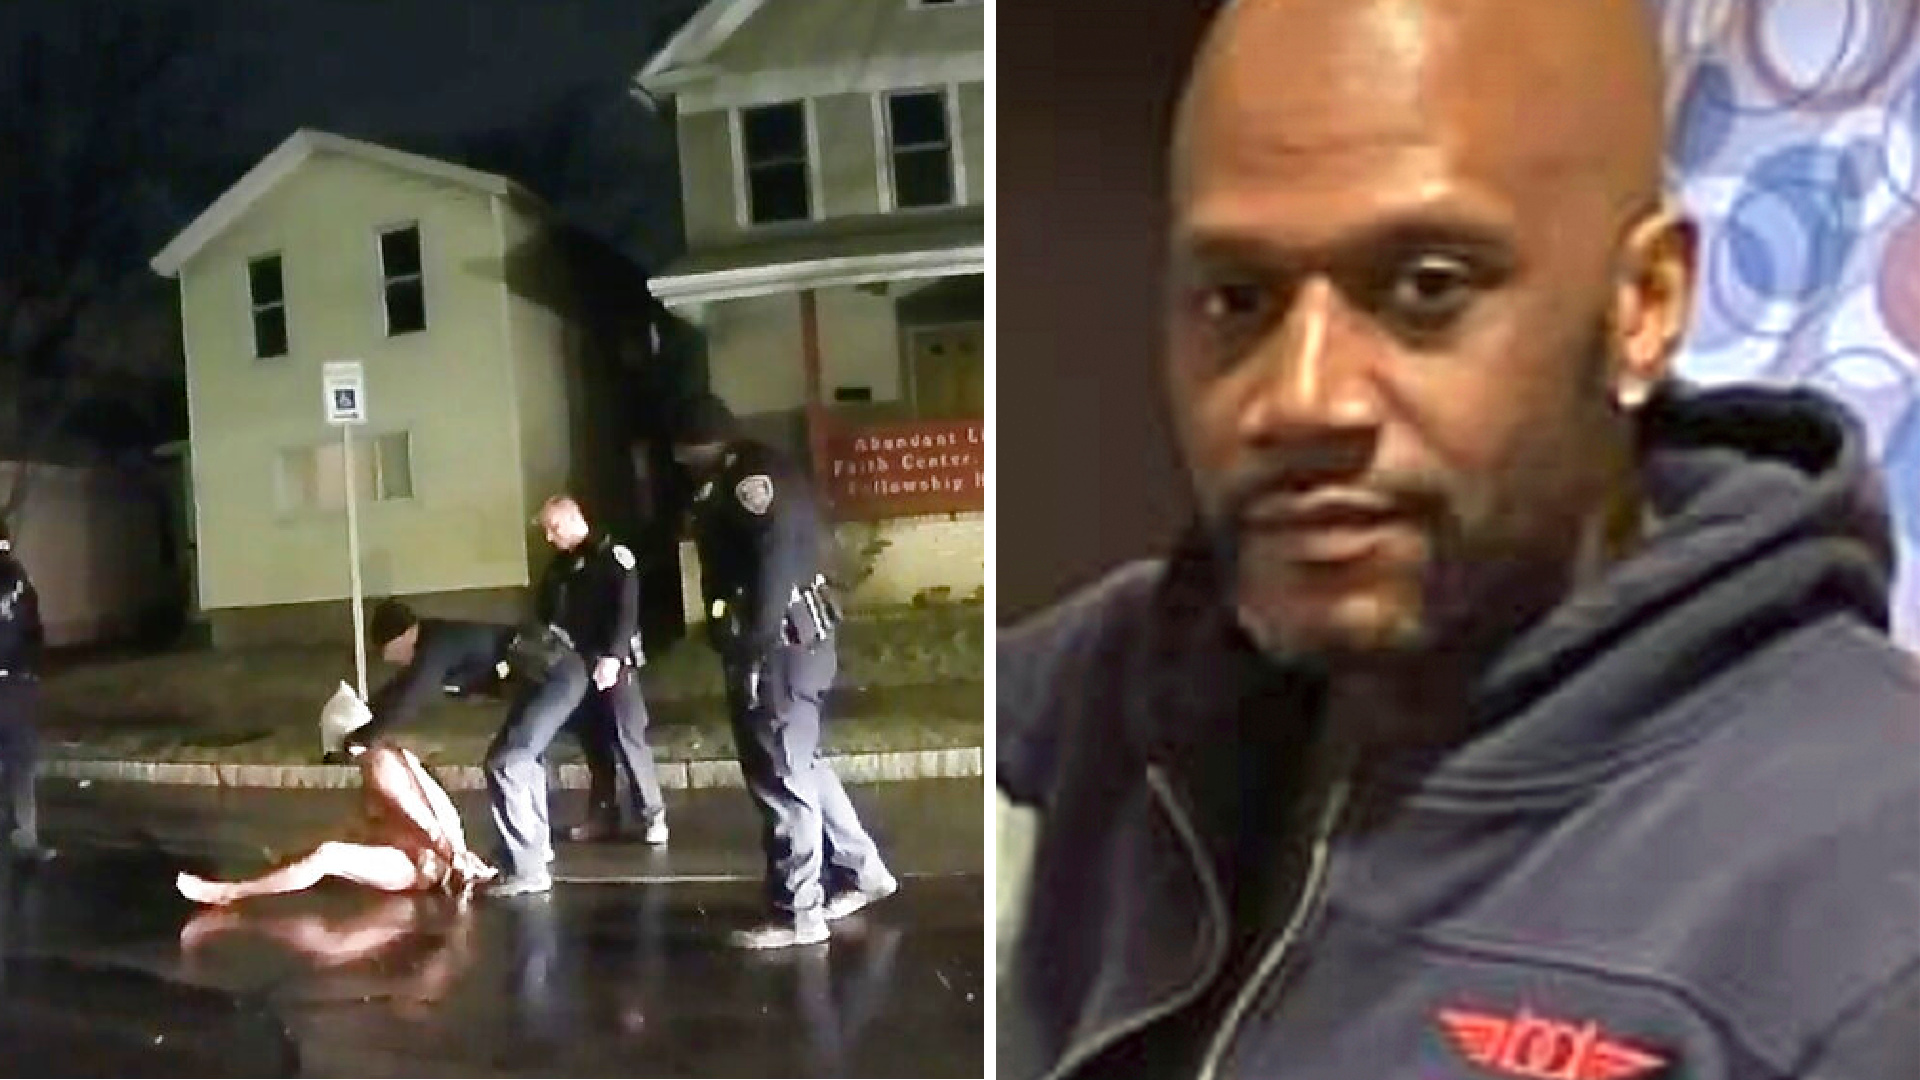 In this image taken from police body camera video provided by Roth and Roth LLP on Sept. 2, 2020, a Rochester police officer puts a hood over the head of Daniel Prude, on March 23, 2020, in Rochester, N.Y. On the right, Prude is seen in an undated photo. (Roth and Roth LLP via AP, File)